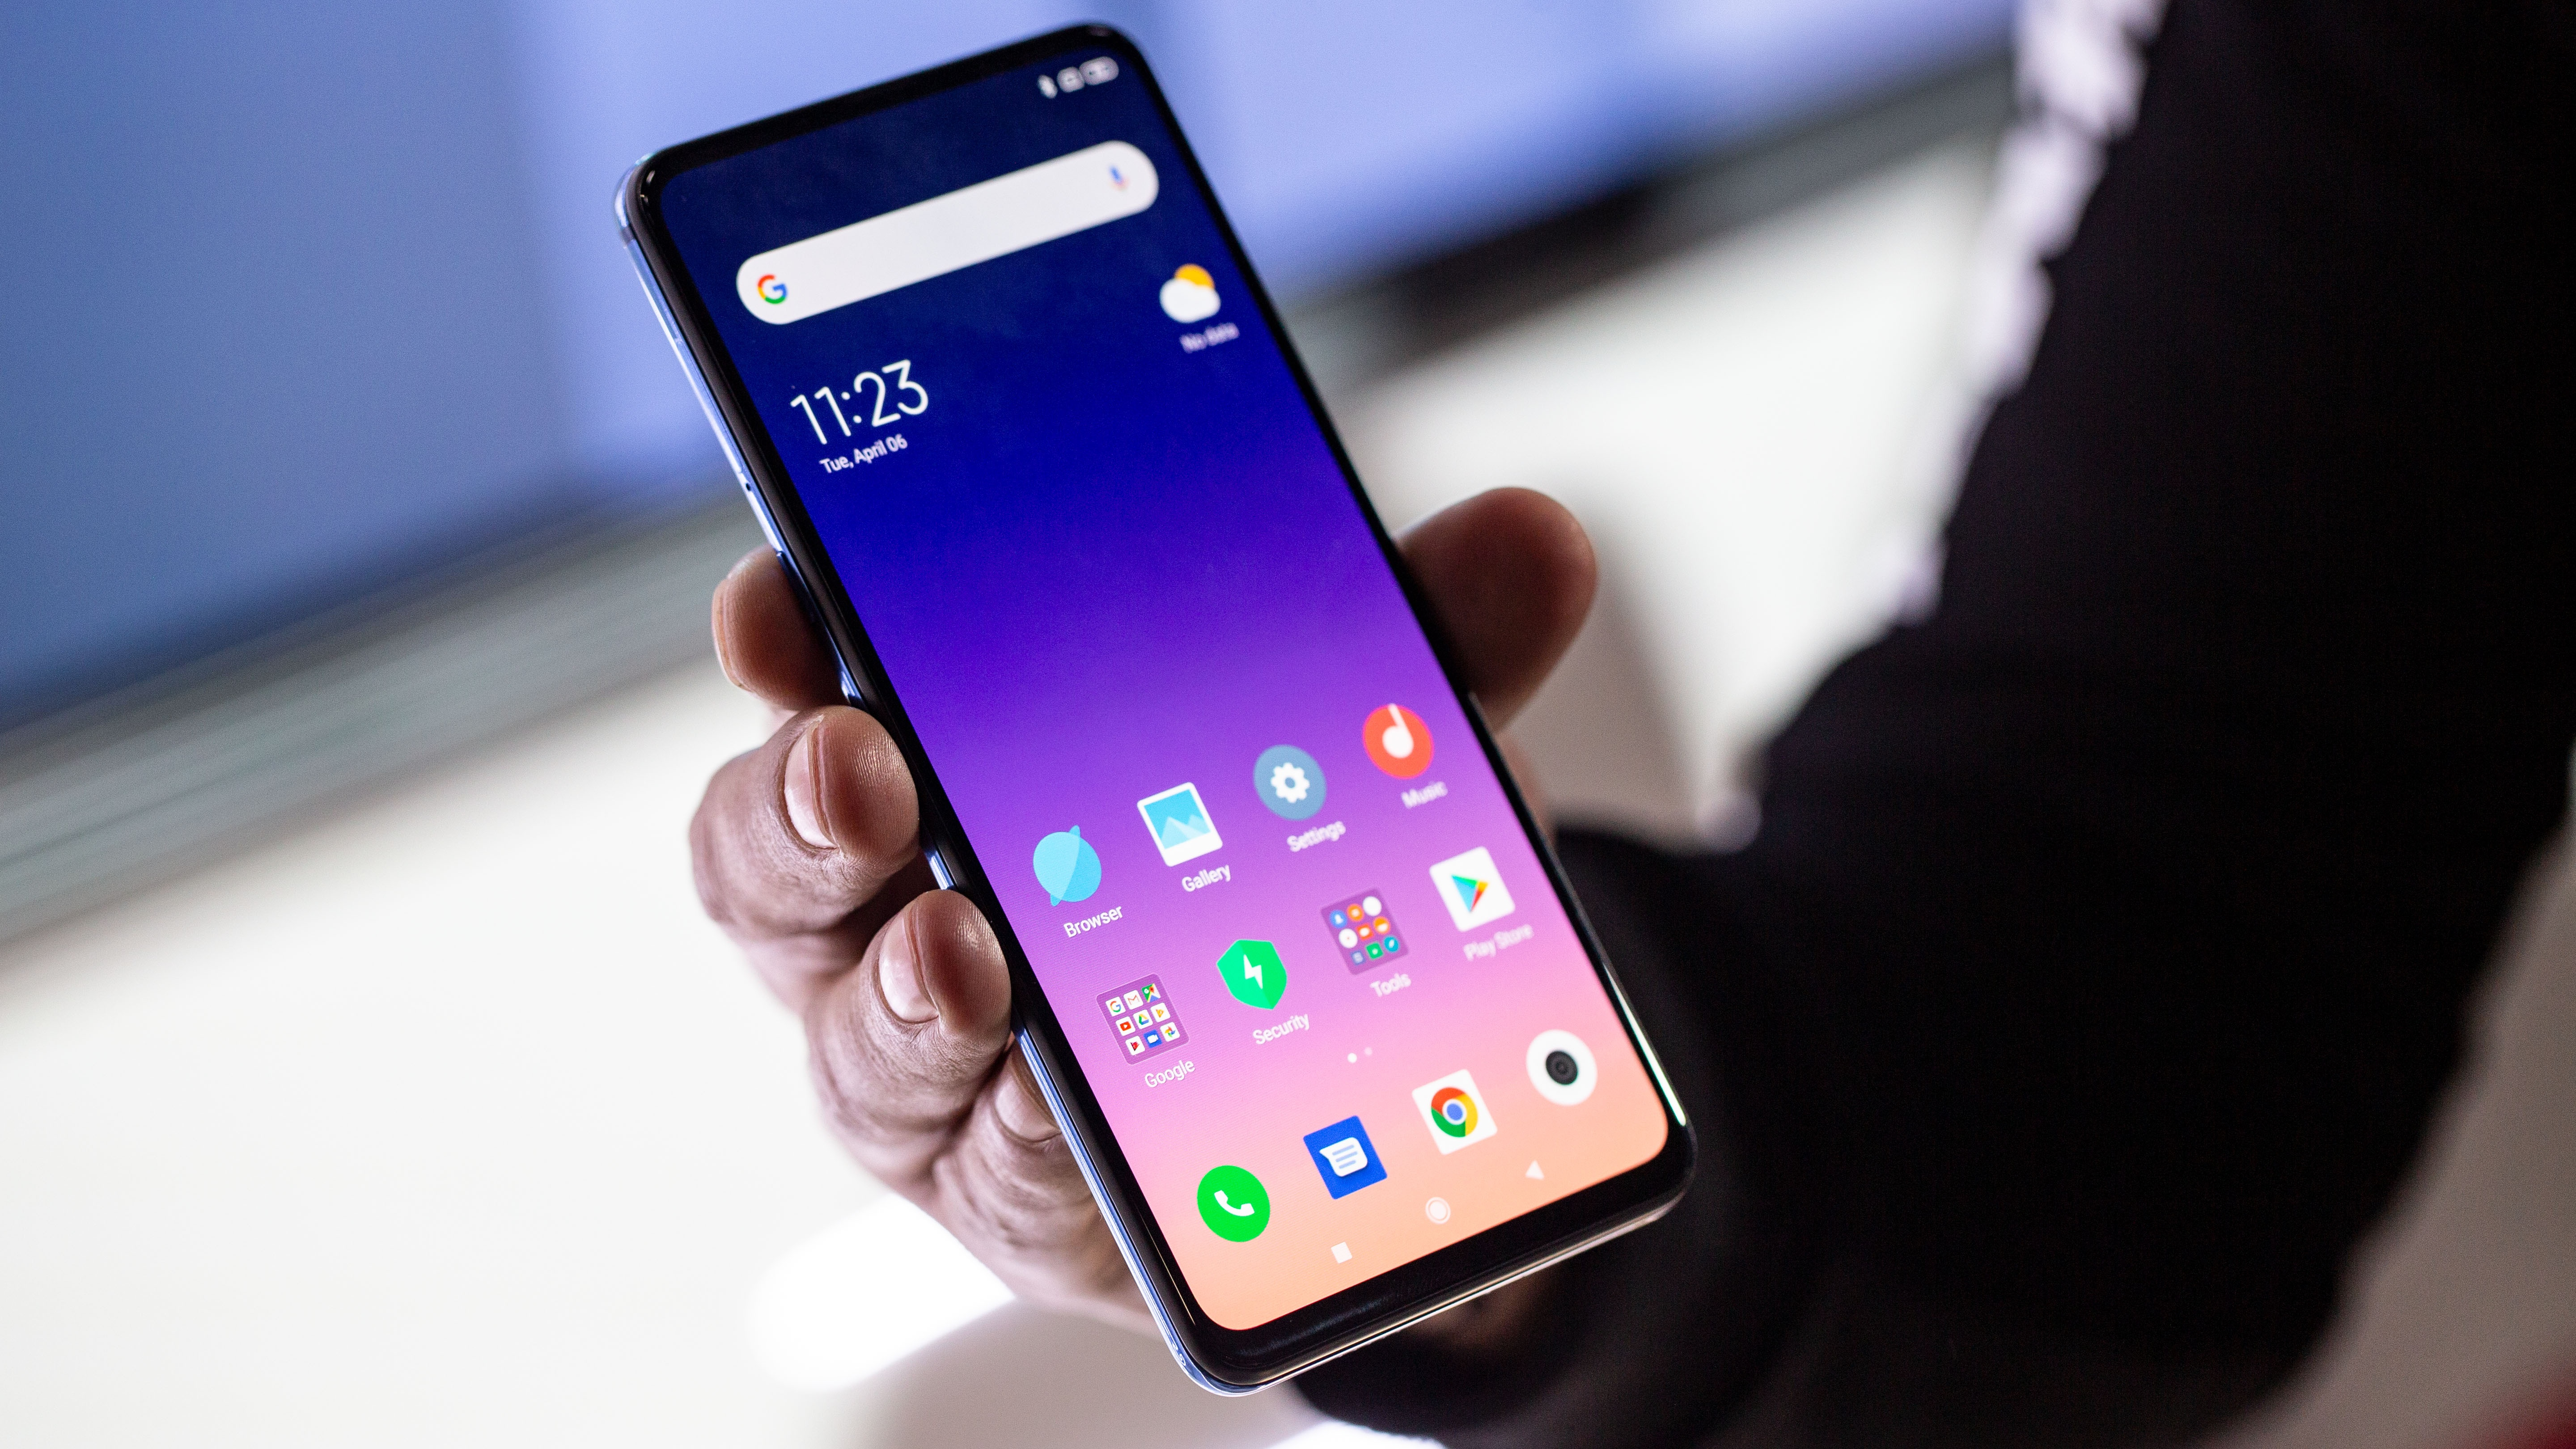 https://alatest com/reviews/cell-phone-reviews/c3-8/ daily 2019-08-02